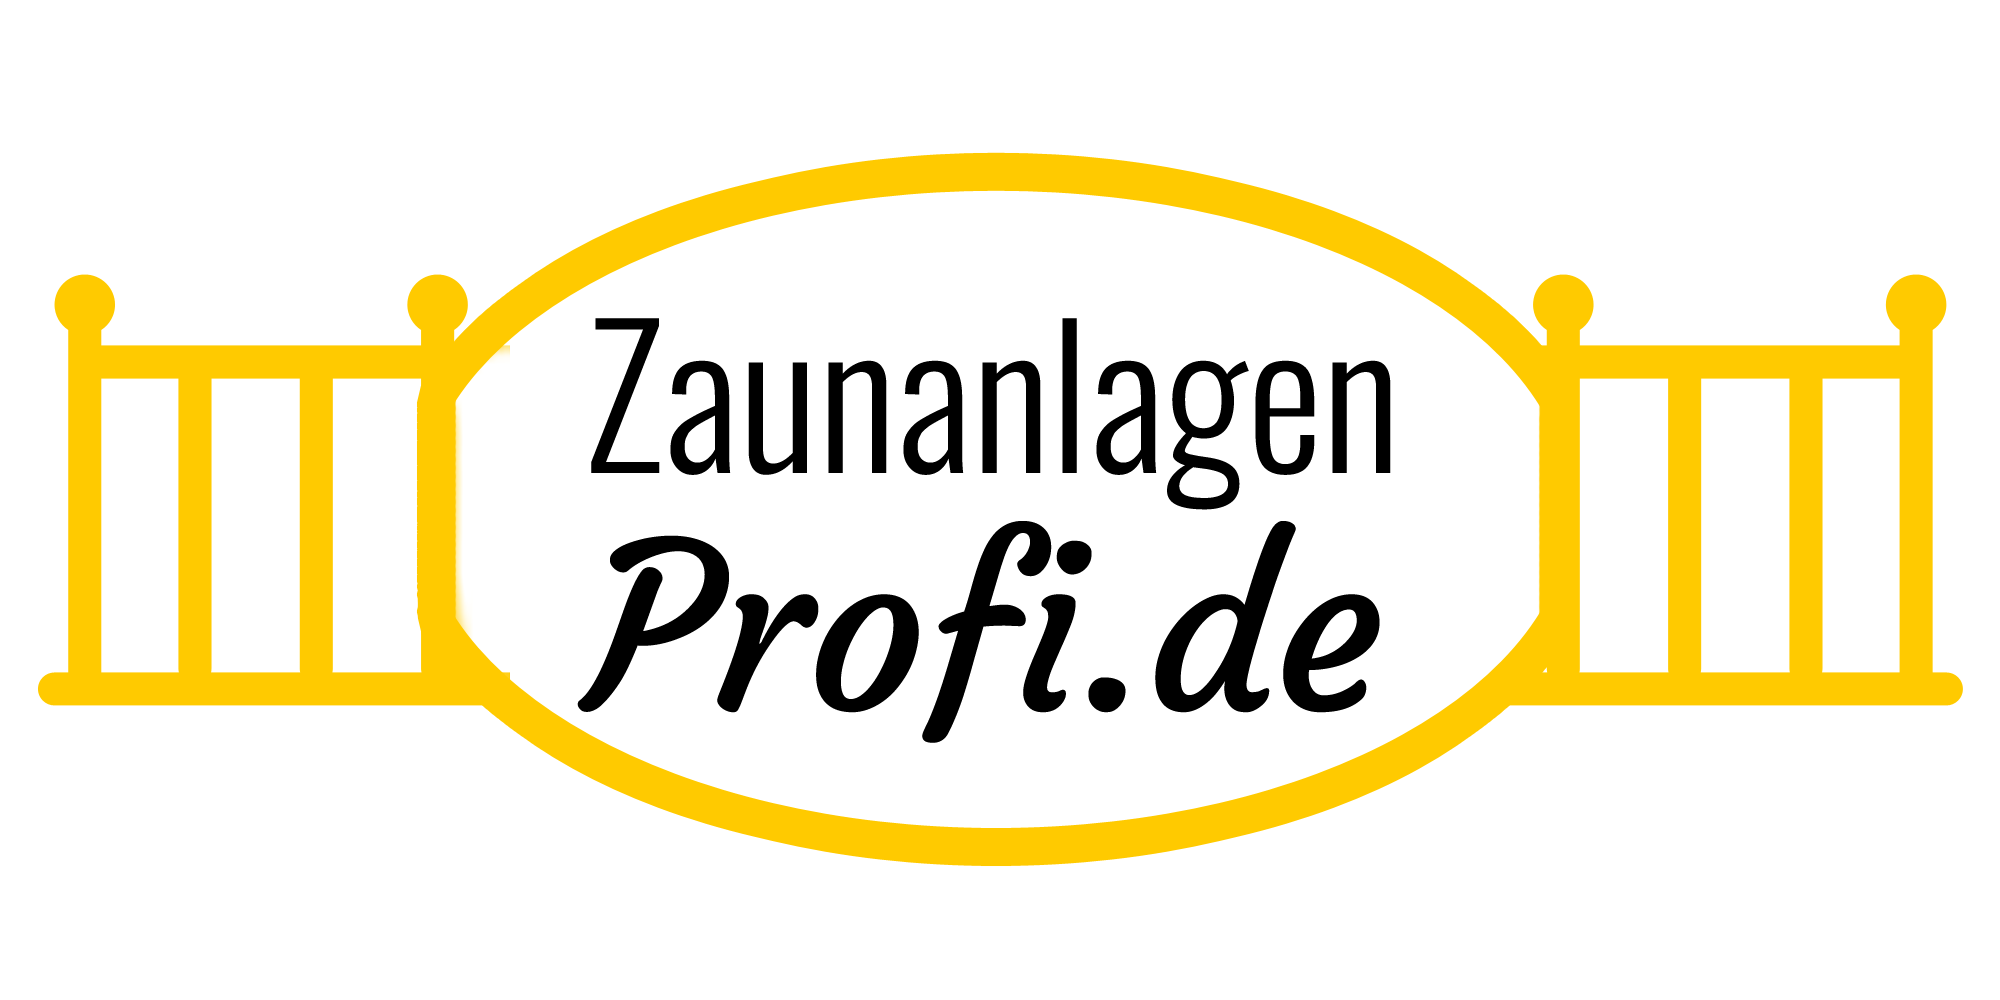 Zaunanlagen-Profi.de - Der Experte für Stabmattenzäune